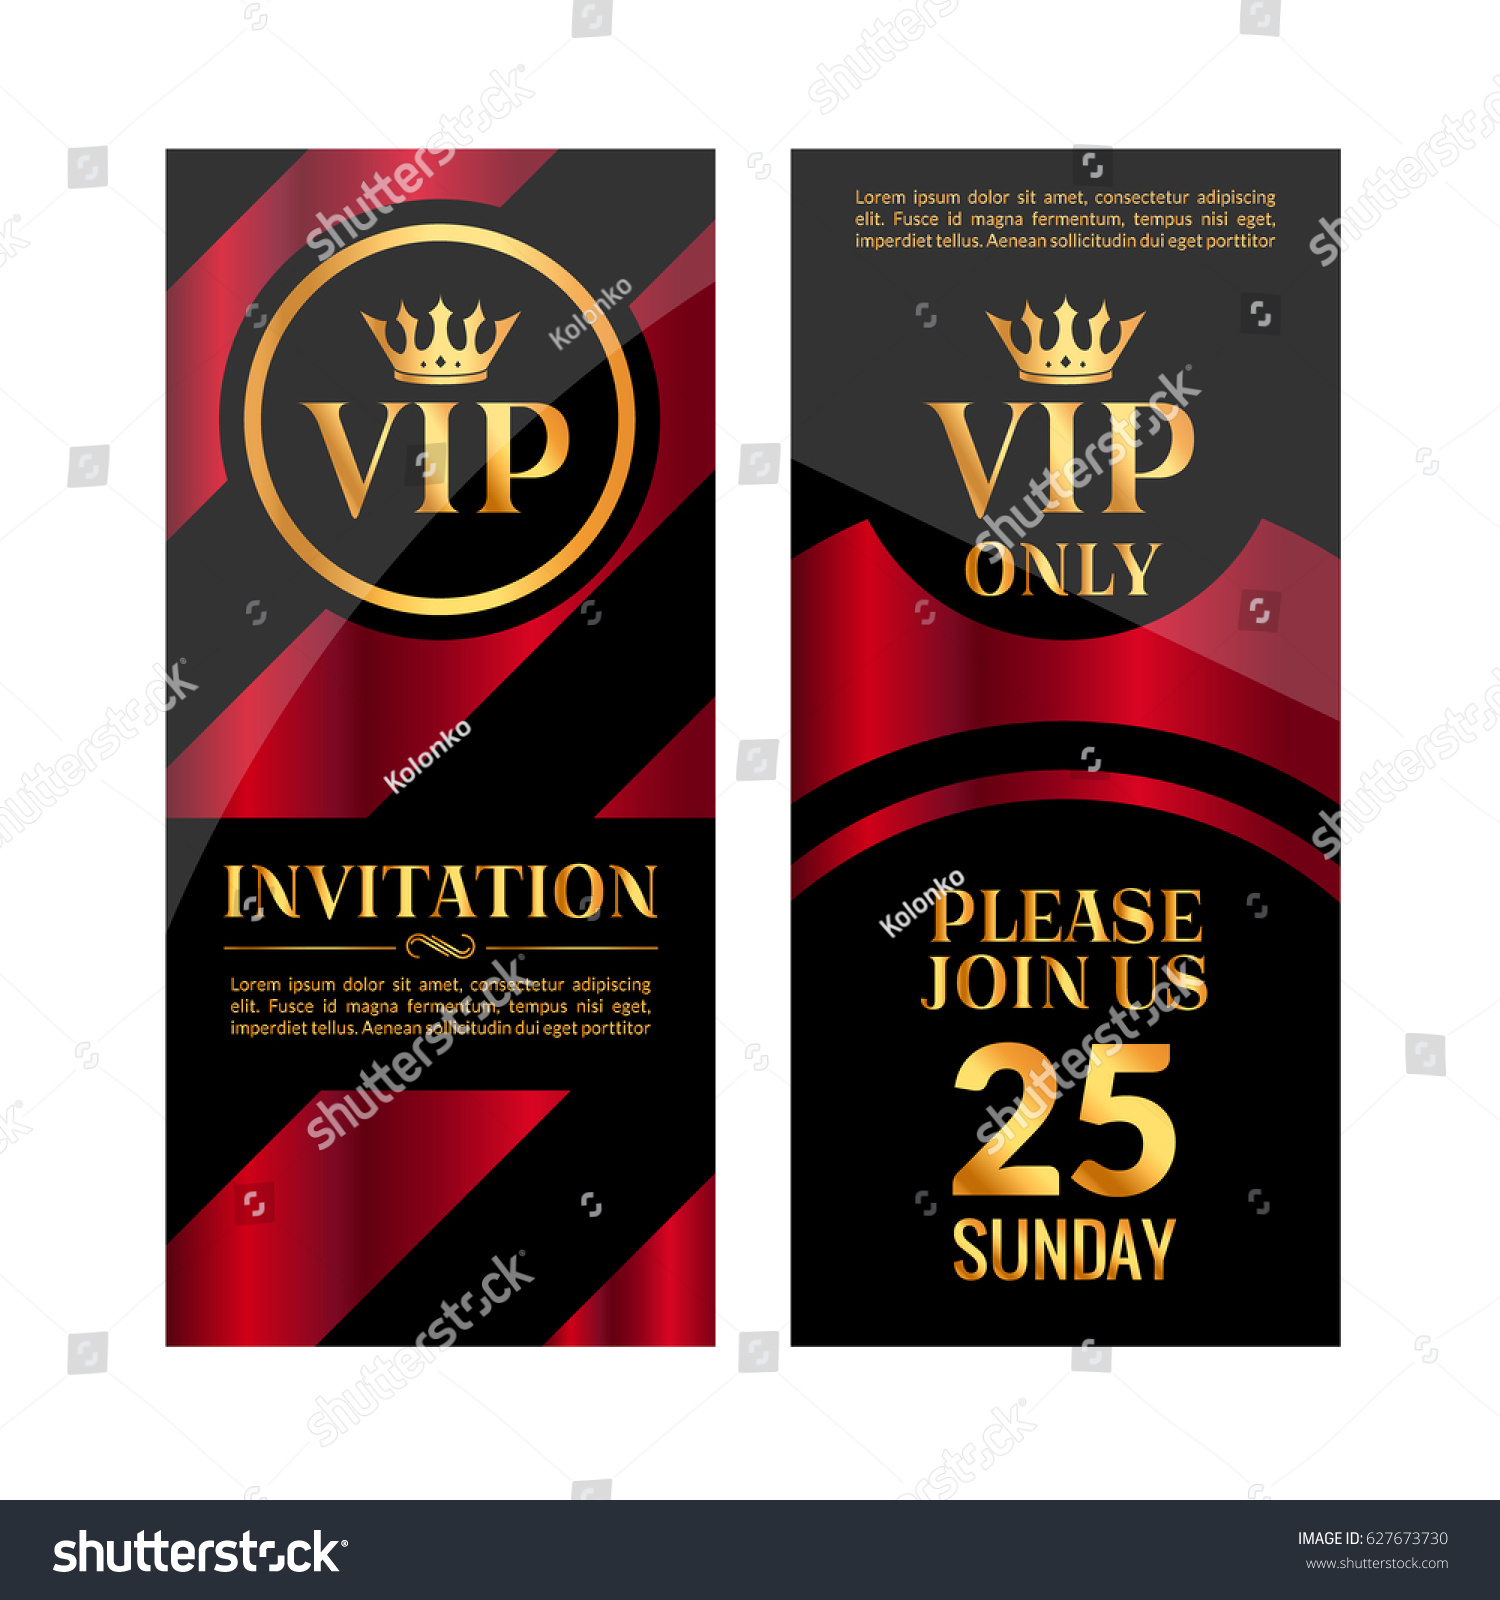 VIP Party Premium Red Golden Invitation Stock Vector (Royalty Free ...